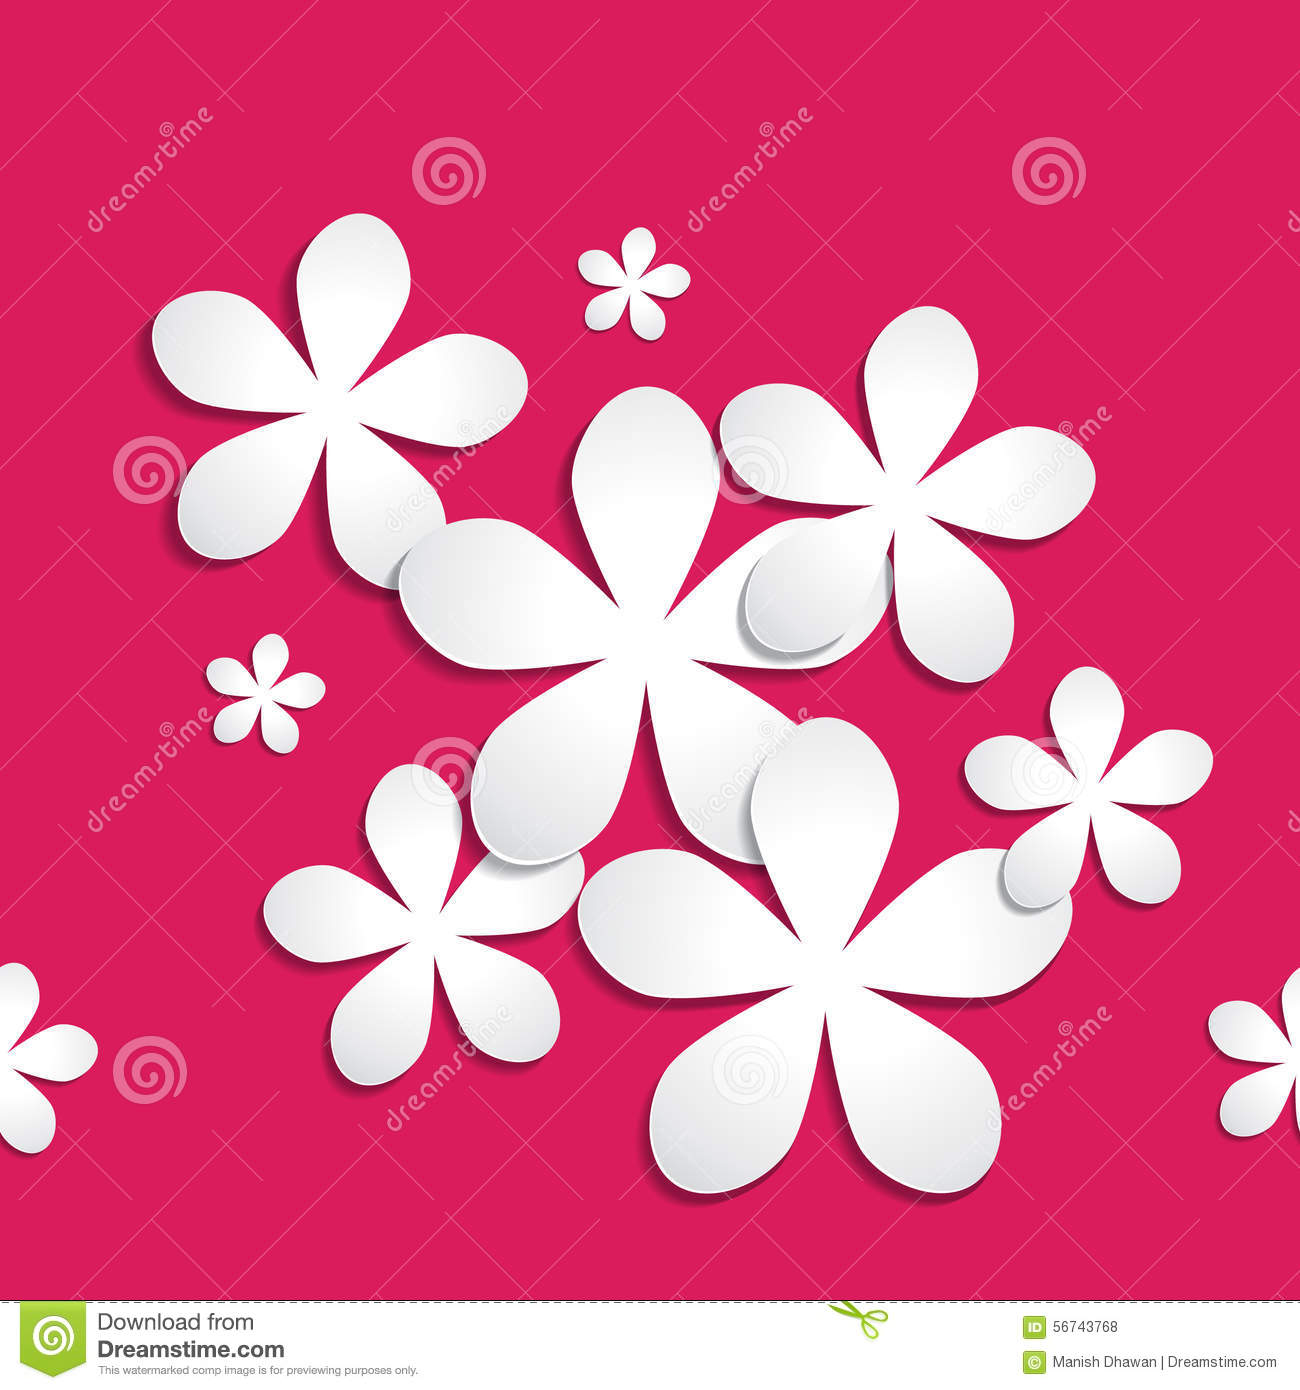 Abstract 3d paper flower pattern on pink red background stock vector abstract 3d paper flower pattern on pink red background mightylinksfo